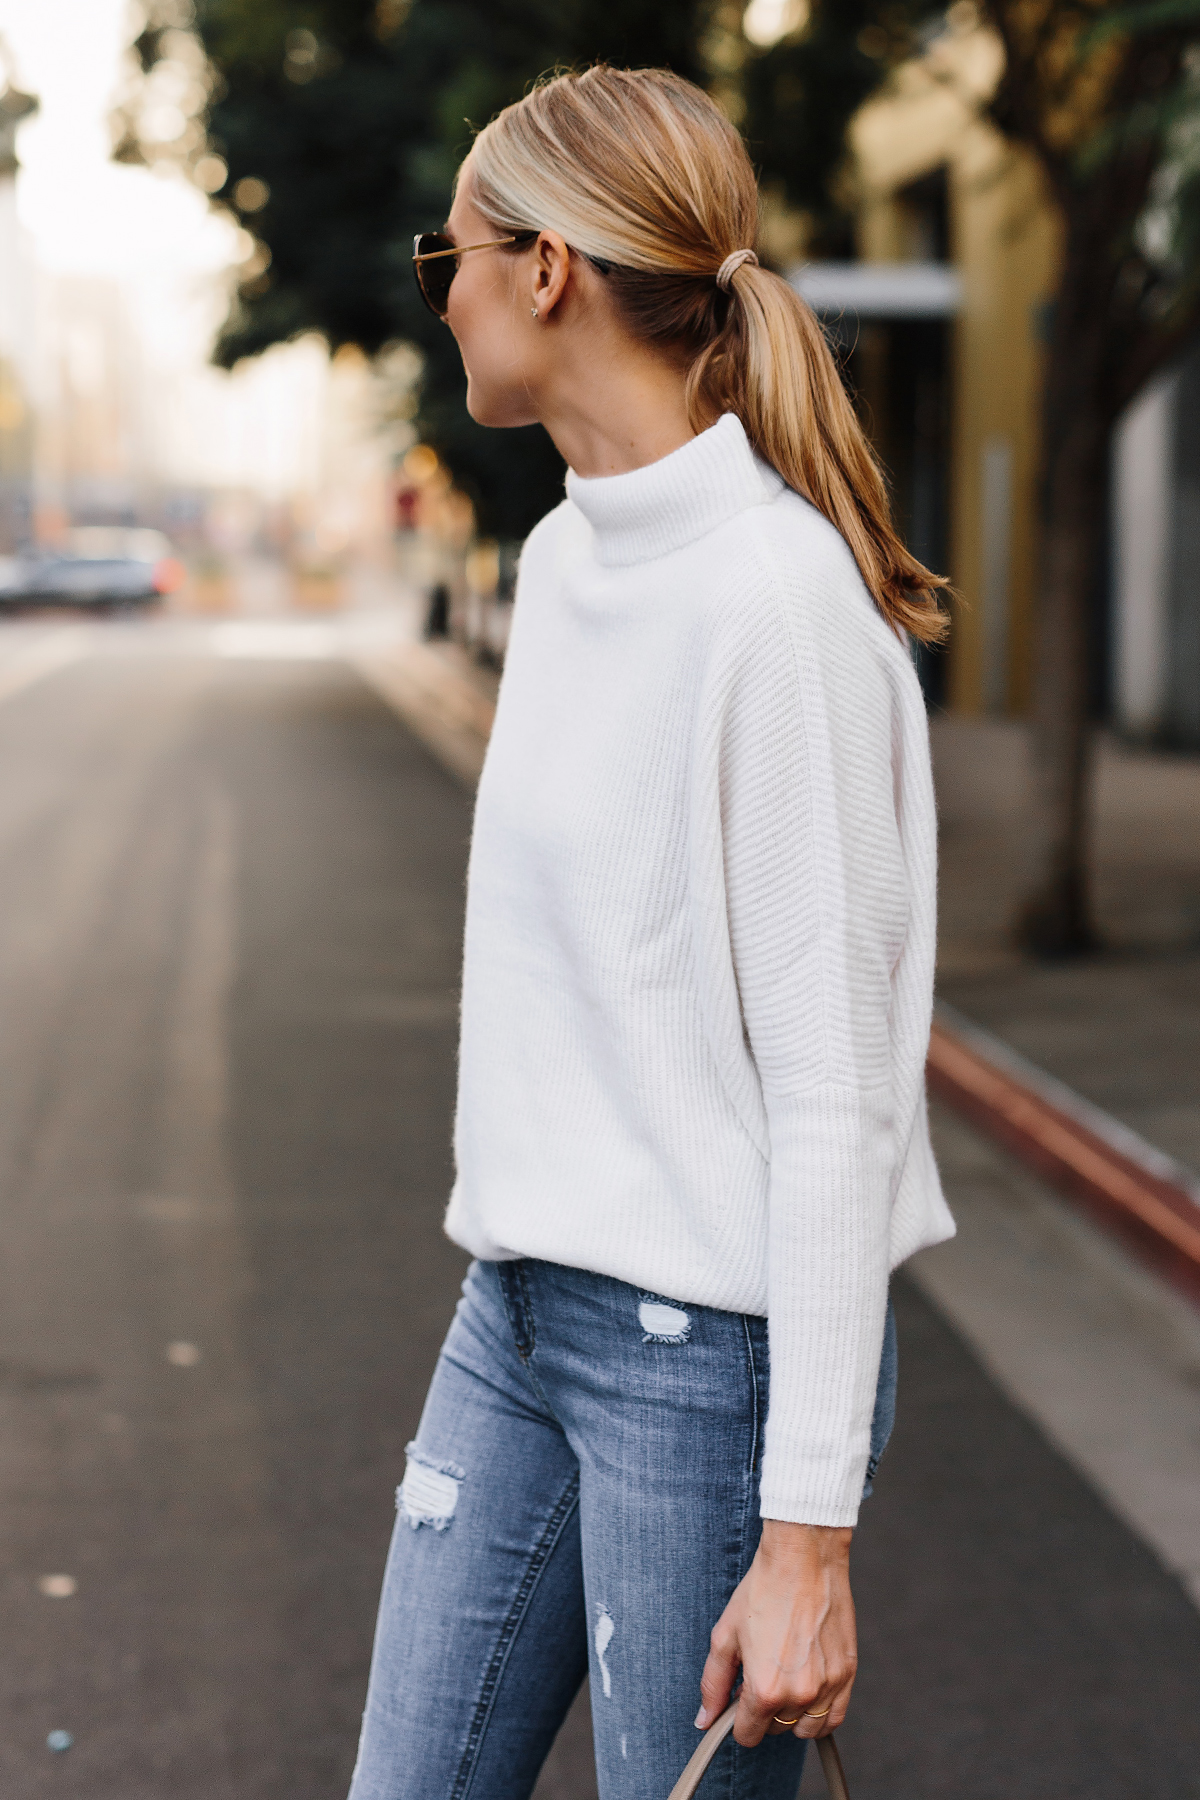 Blonde Woman Wearing White Mock Neck Sweater Denim Ripped Skinny Jeans Outfit Fashion Jackson San Diego Fashion Blogger Street Style